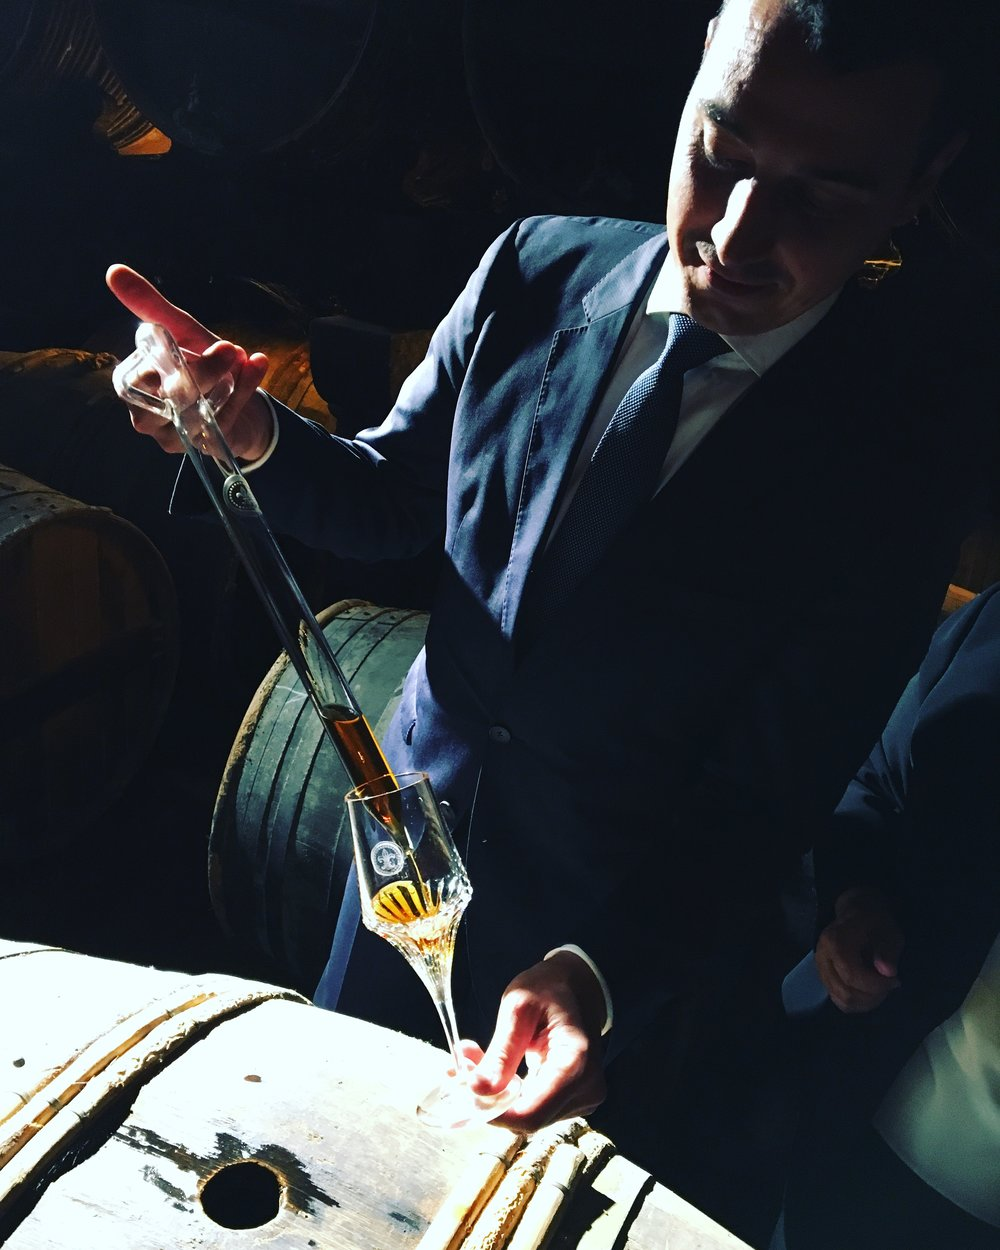 Baptiste pulls 100-year-old Louis XIII from the barrel.